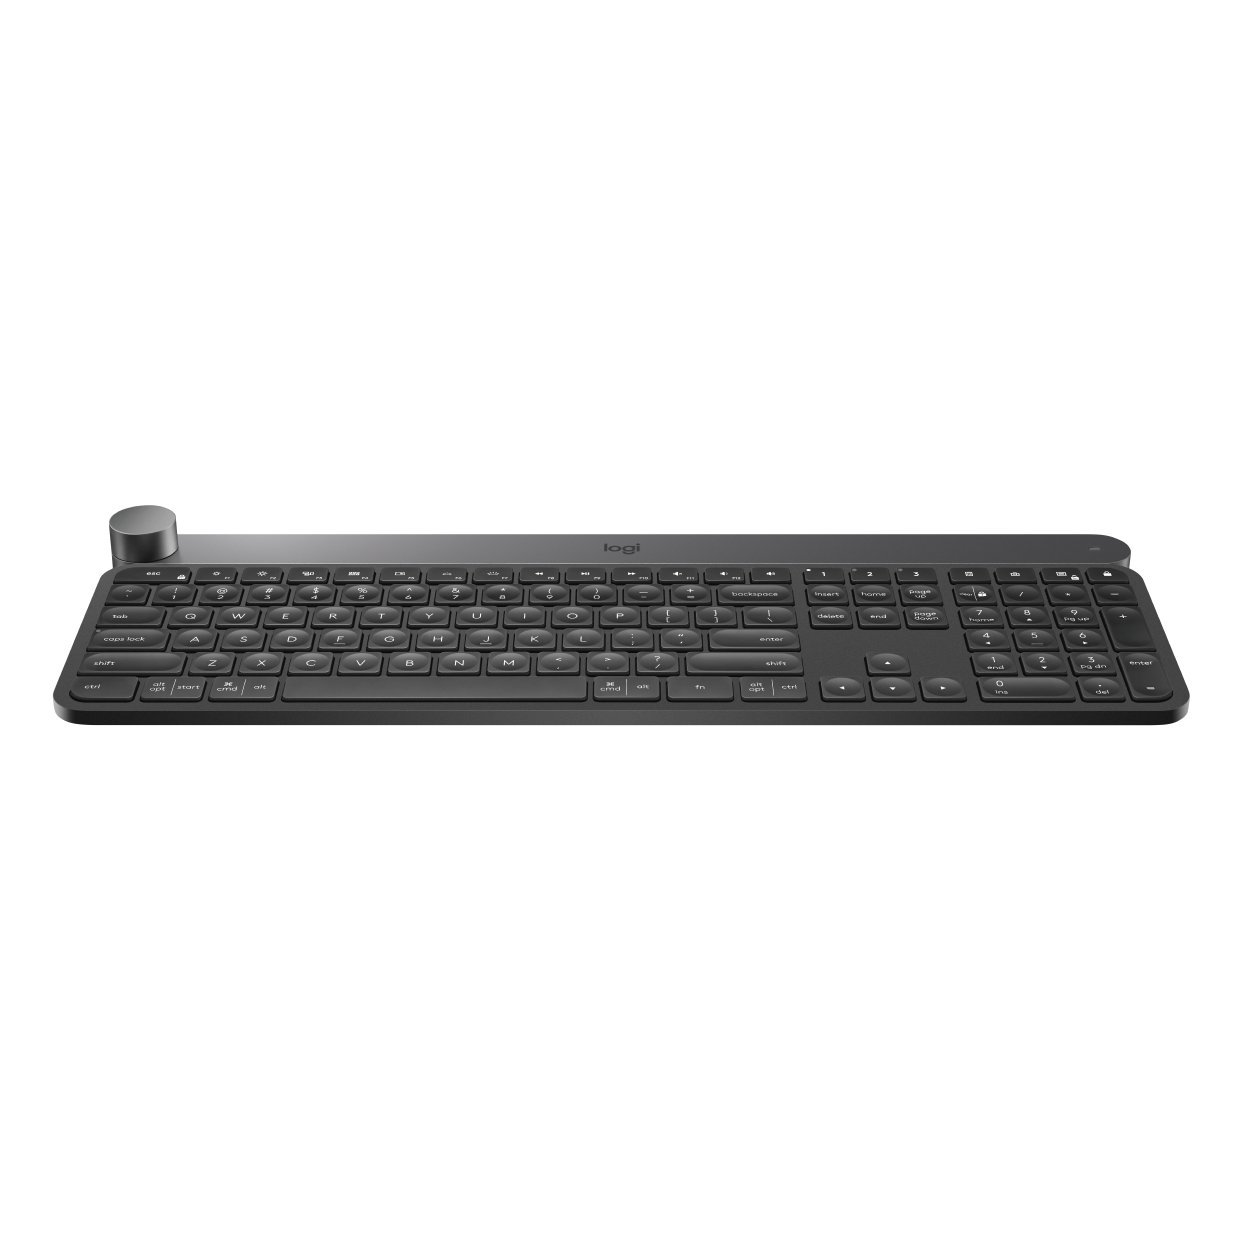 Logitech Craft Advanced Wireless Keyboard with Creative Input Dial and Backlit Keys, Dark grey and aluminum by Logitech (Image #1)